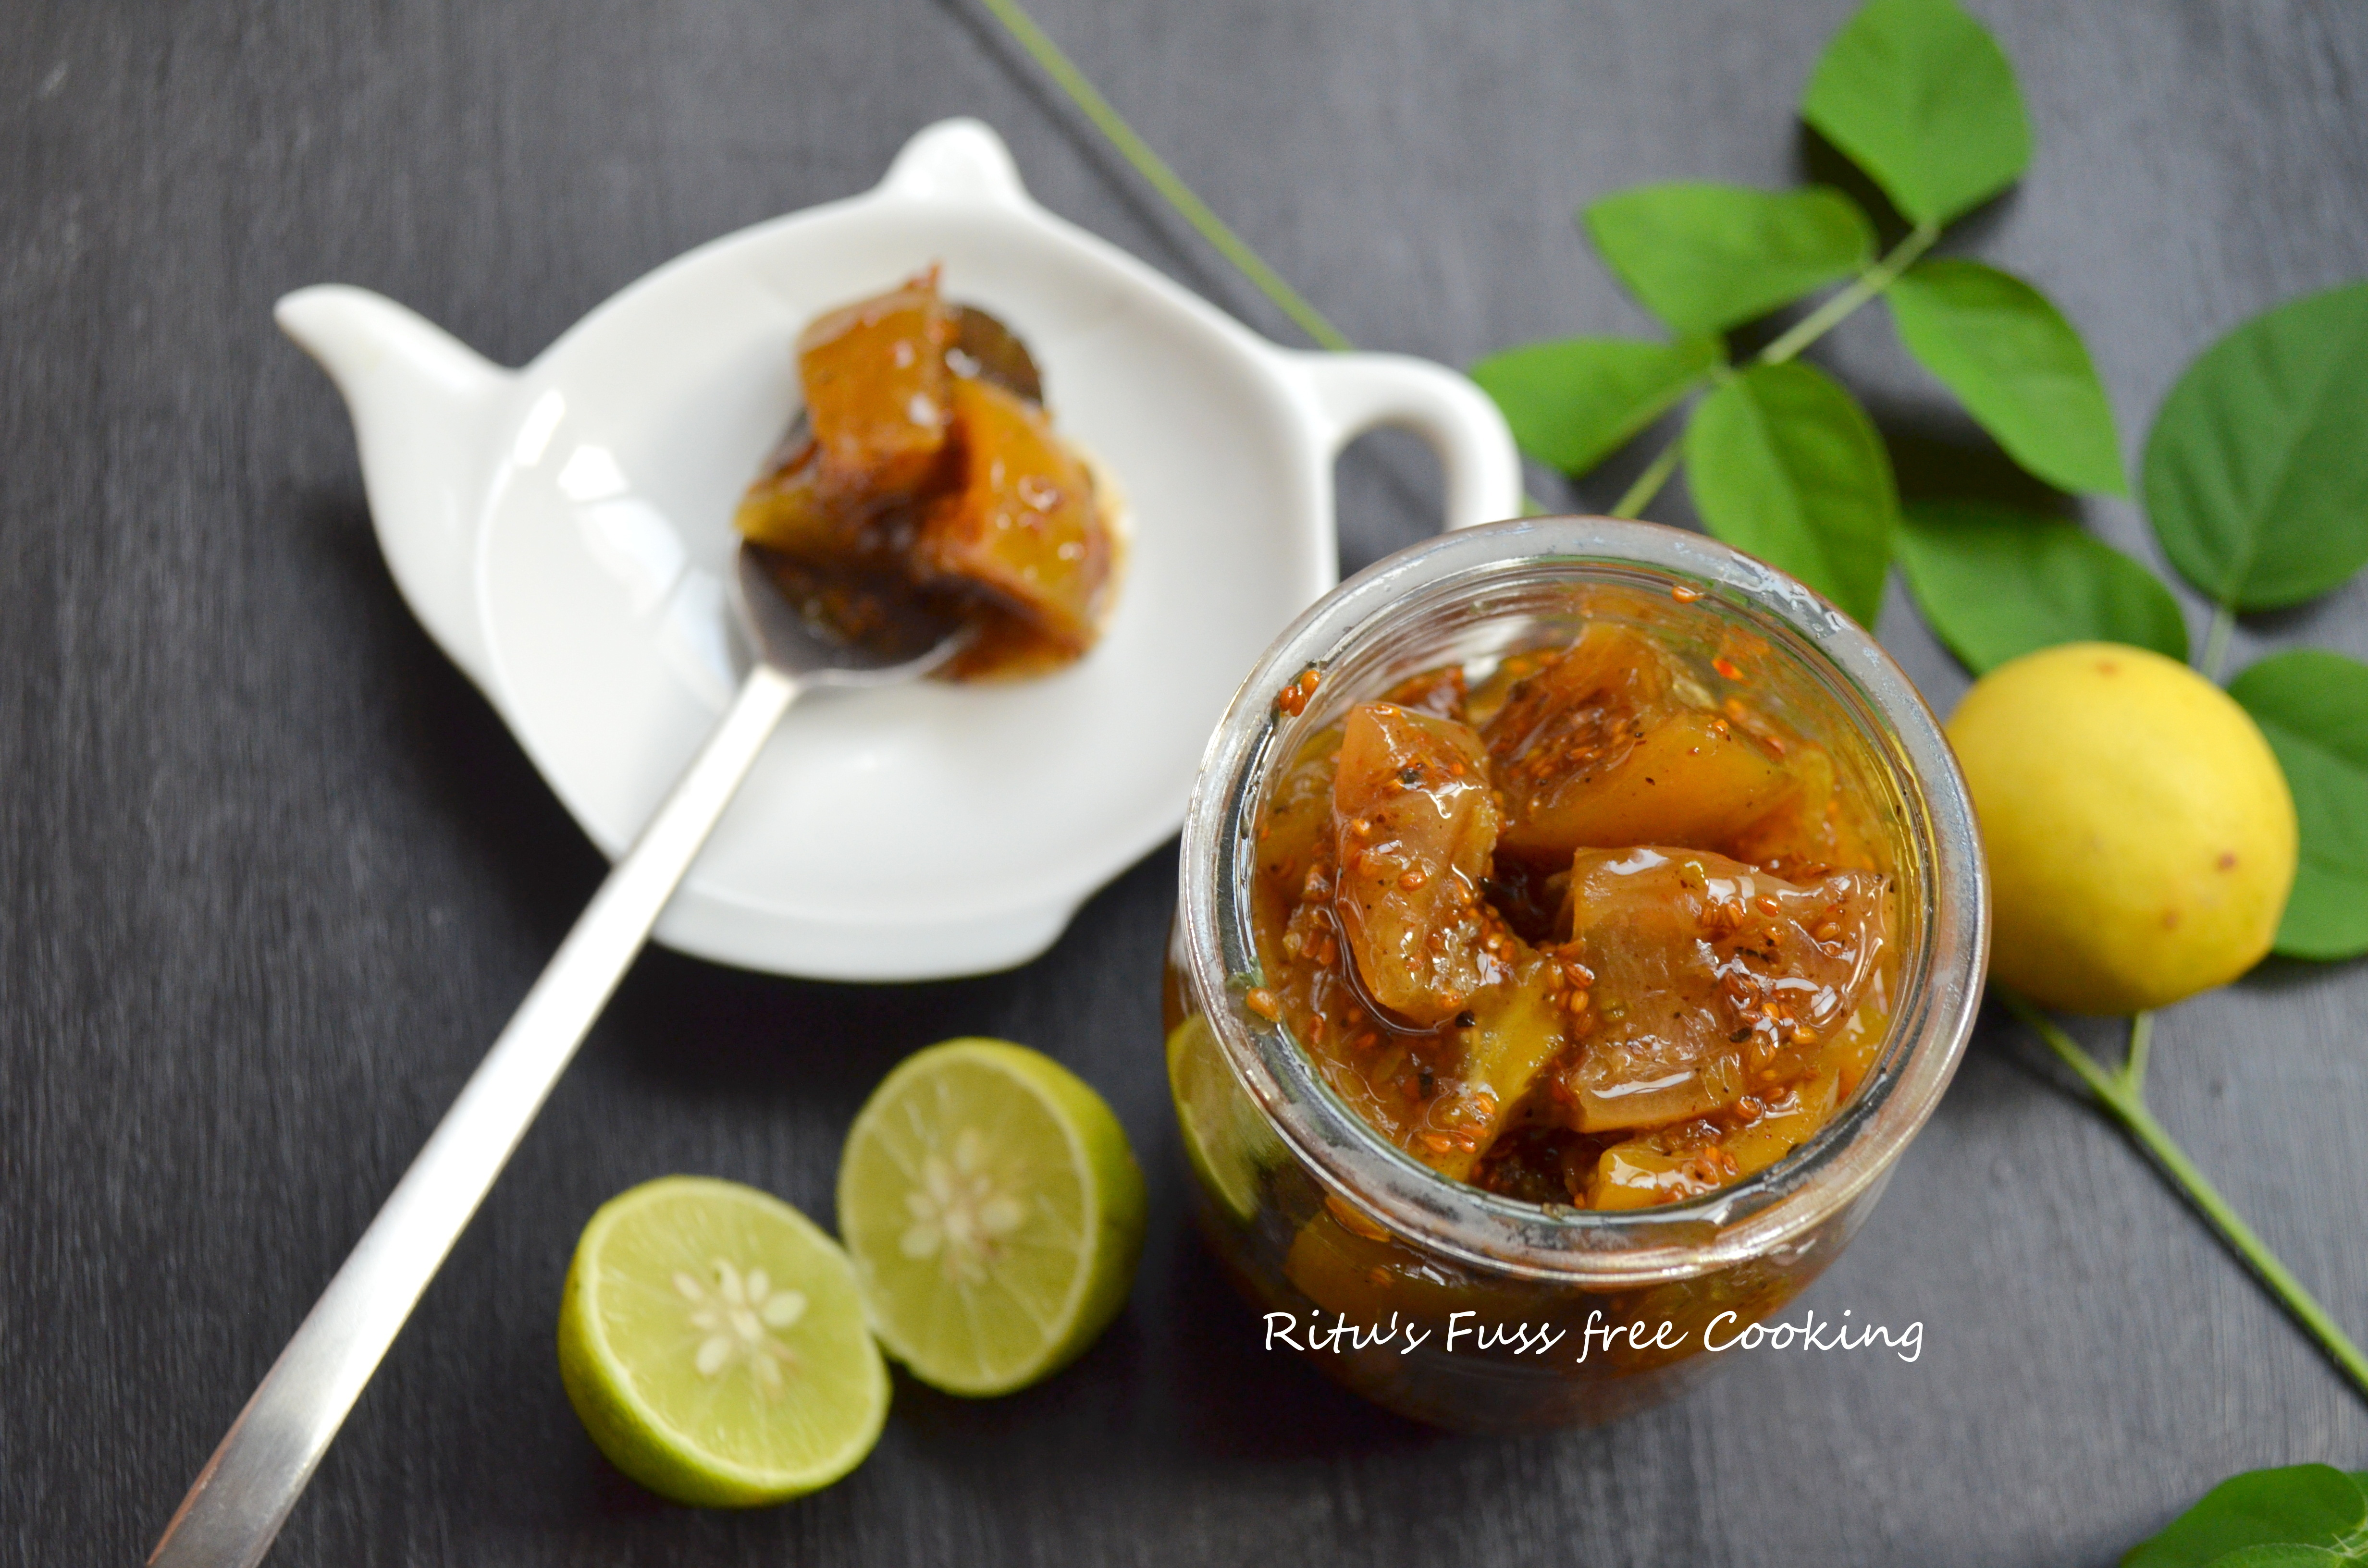 LIME PICKLE: SWEET AND TANGY